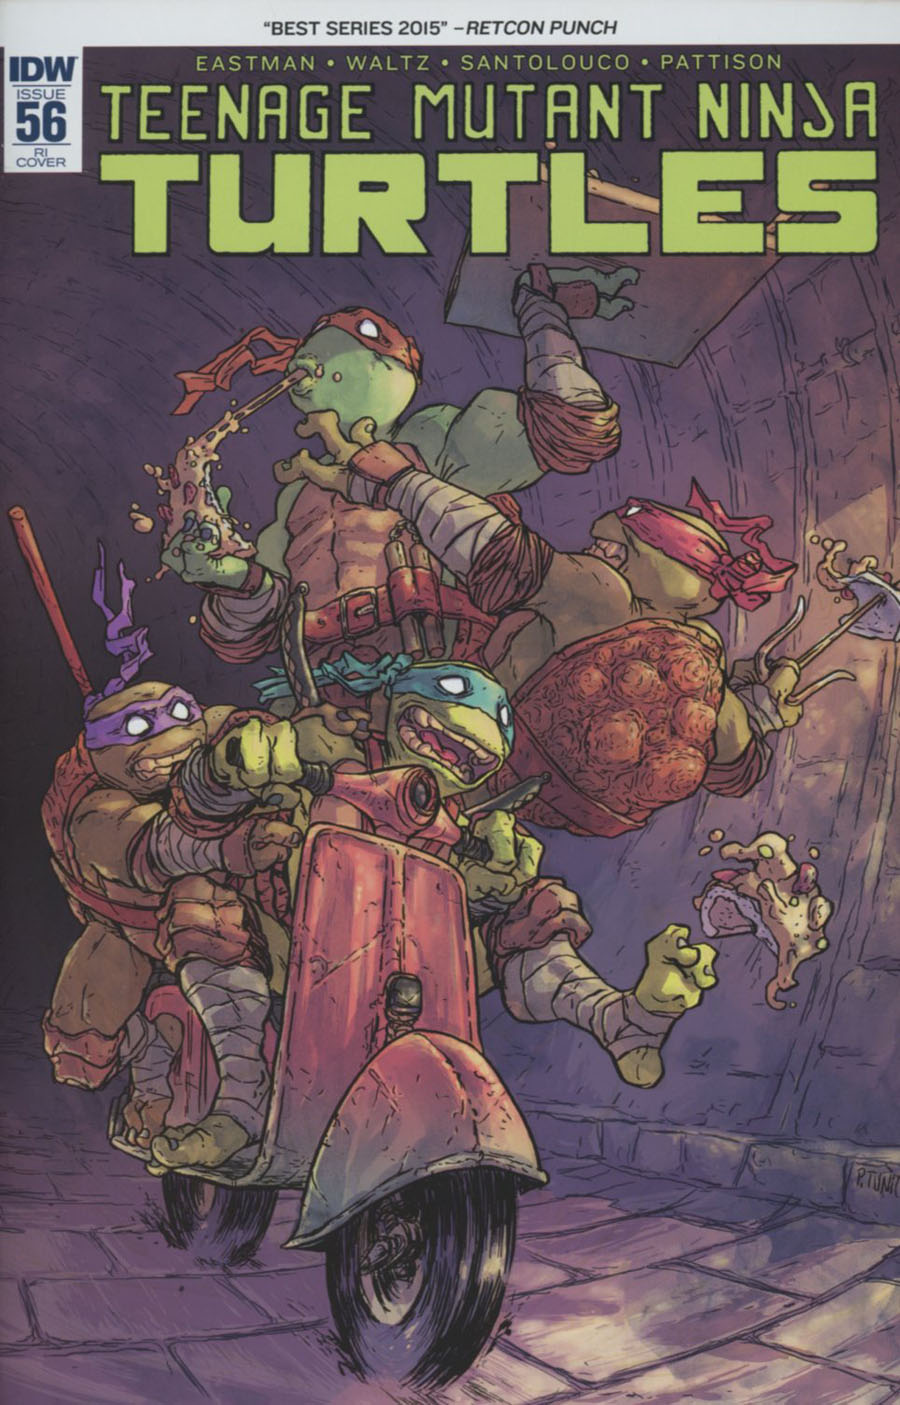 Teenage Mutant Ninja Turtles Vol 5 #56 Cover C Incentive Pablo Tunica Variant Cover